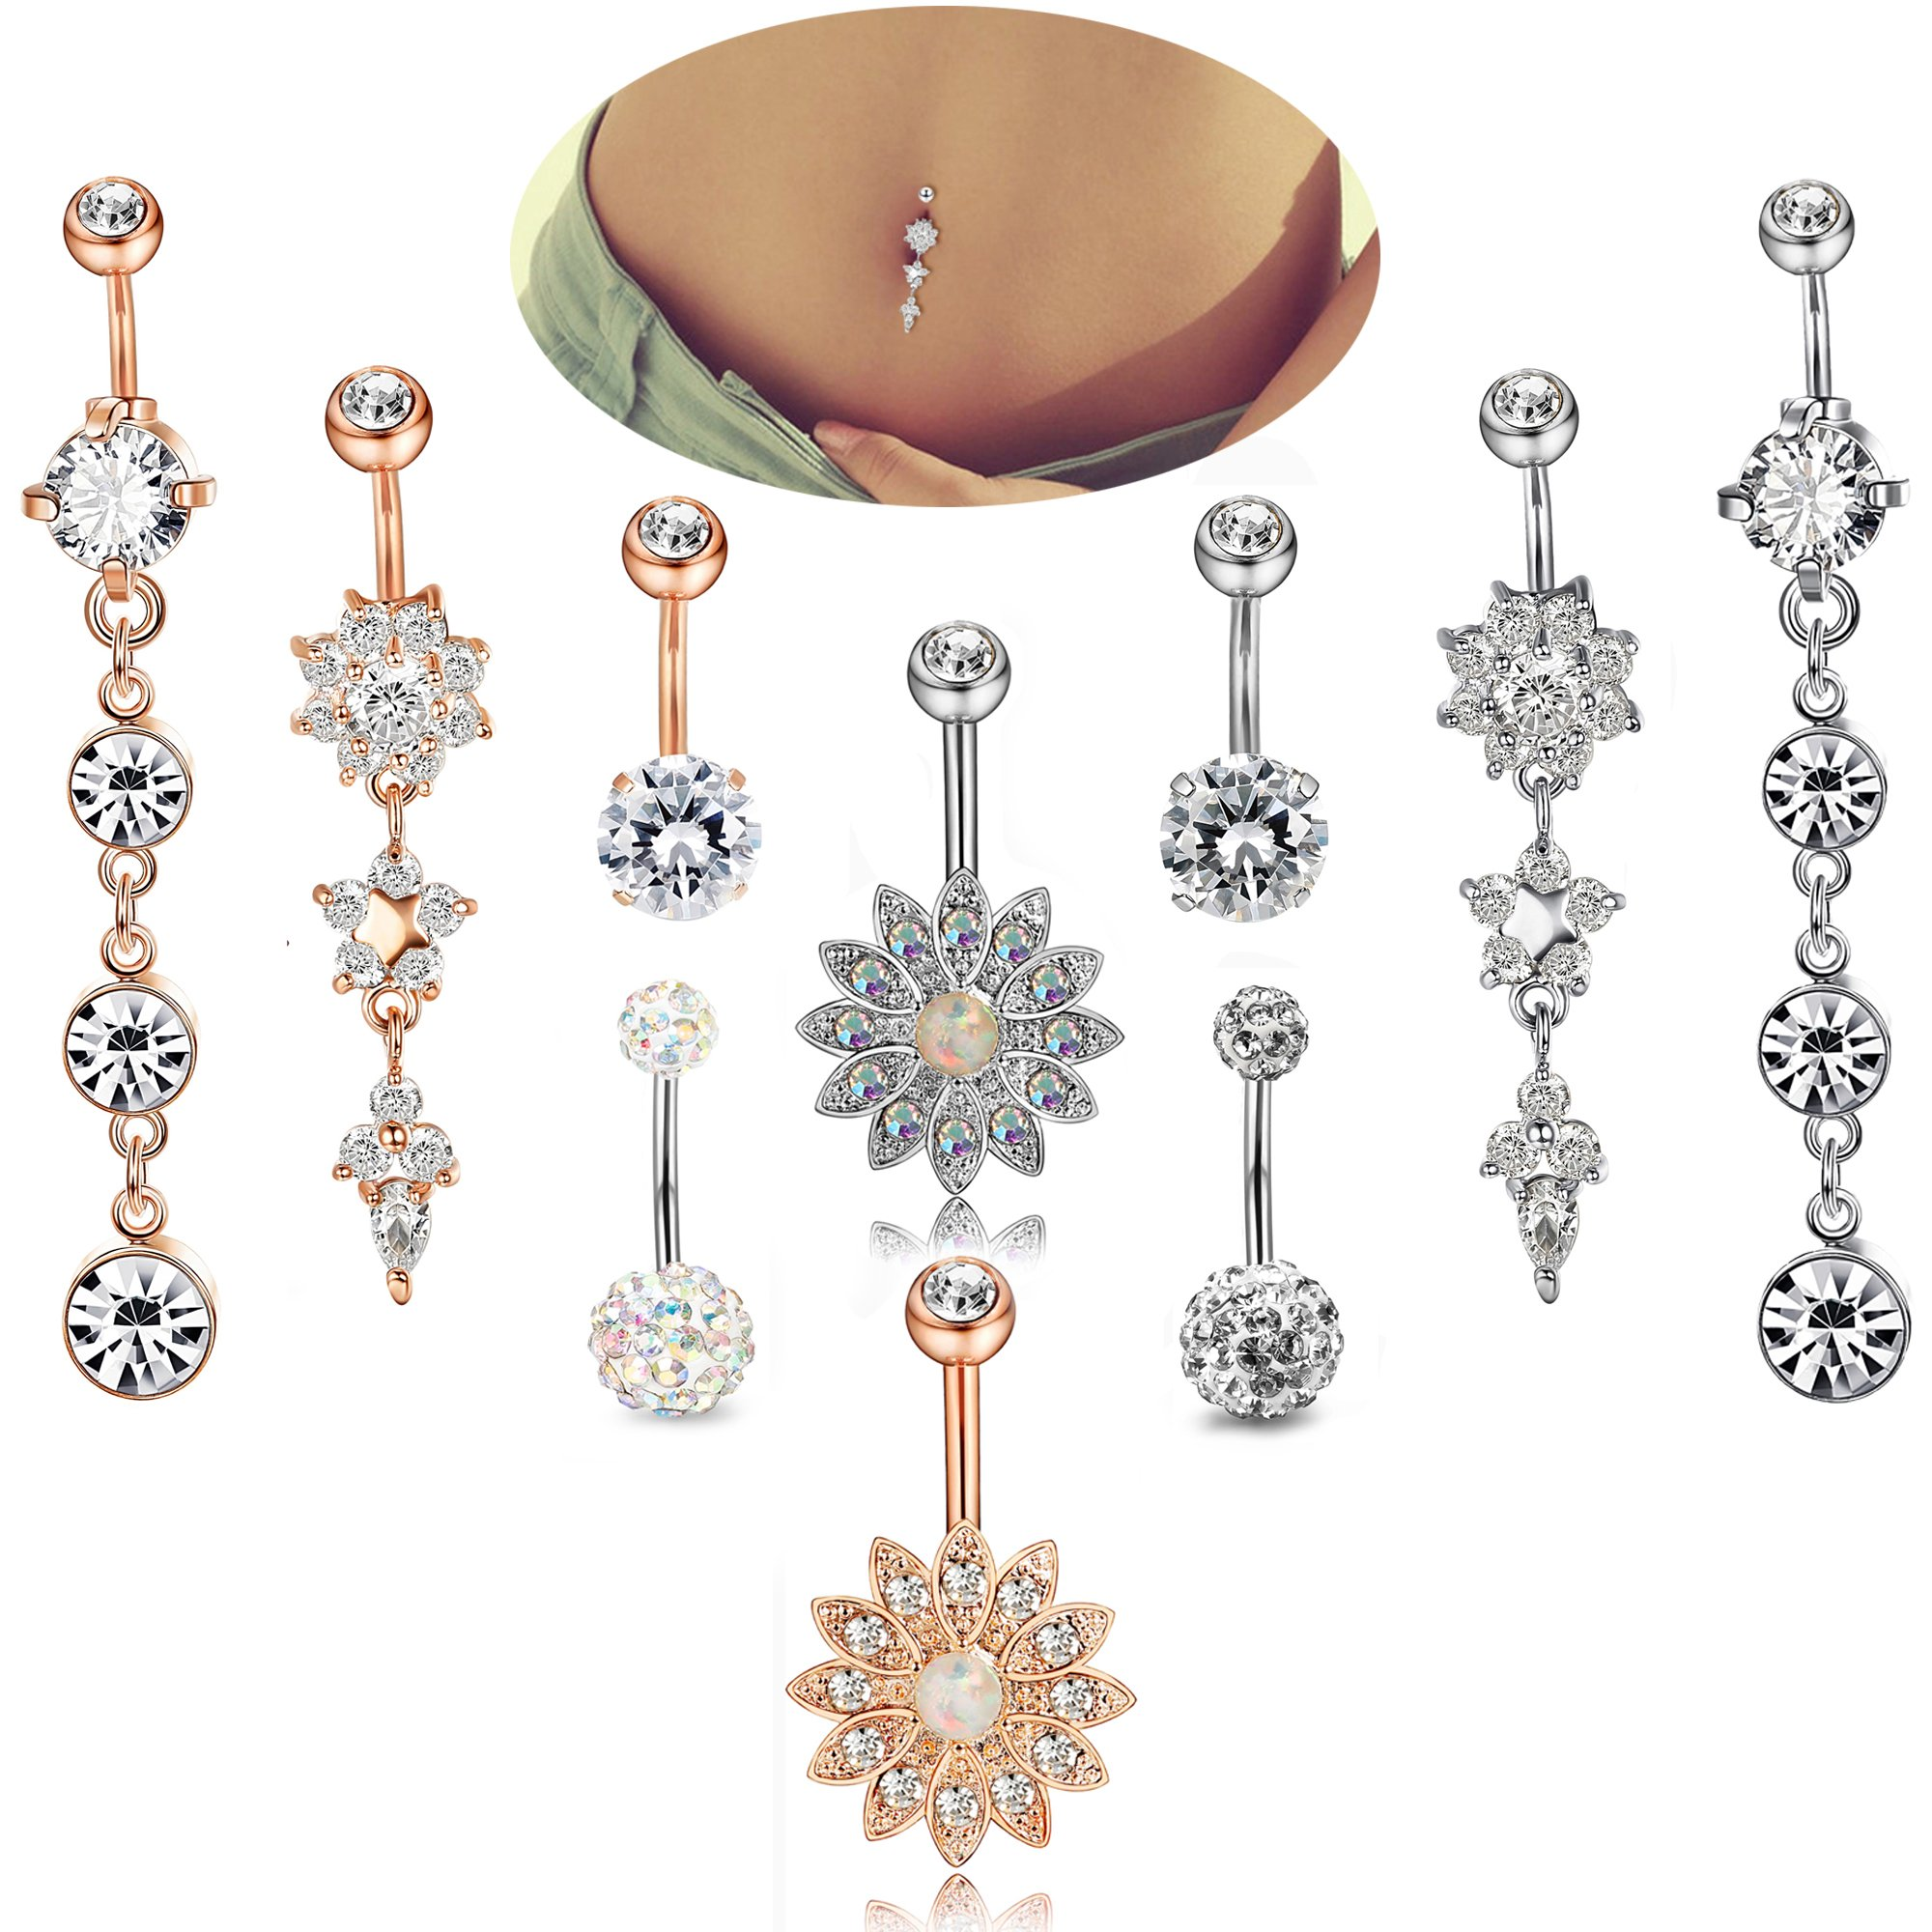 Jstyle 10 Pcs 14G Stainless Steel Belly Button Rings Women Girls Navel Rings CZ Dangle Curved Barbell Body Piercing Jewelry